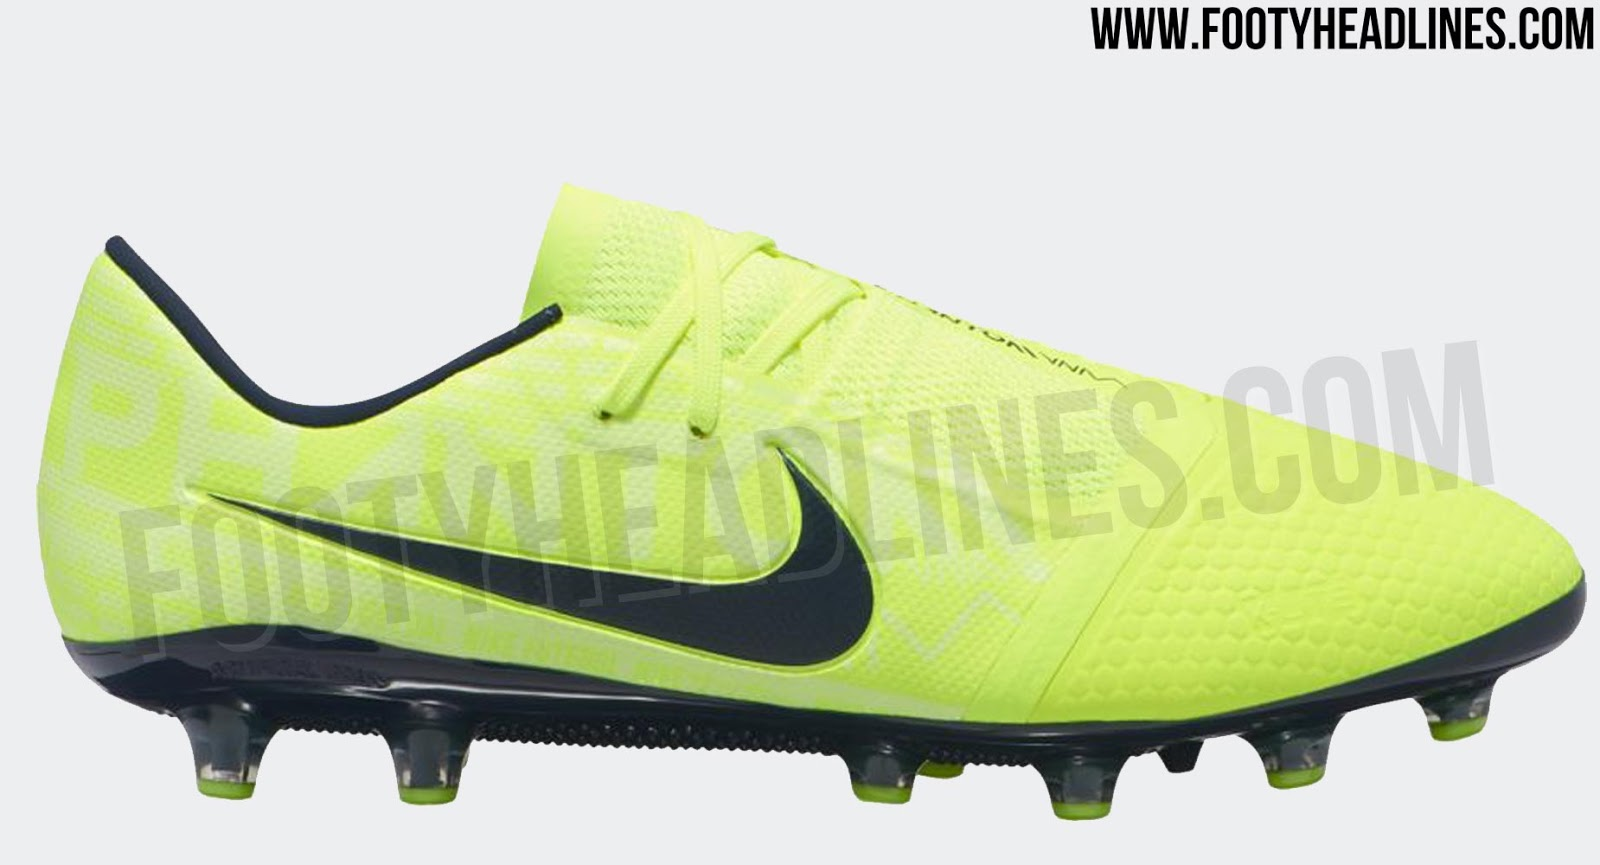 9d17512e6 Volt  New Season - August 2019. Prototypes Which is your favorite Nike  Phantom VNM football boot leaked so far